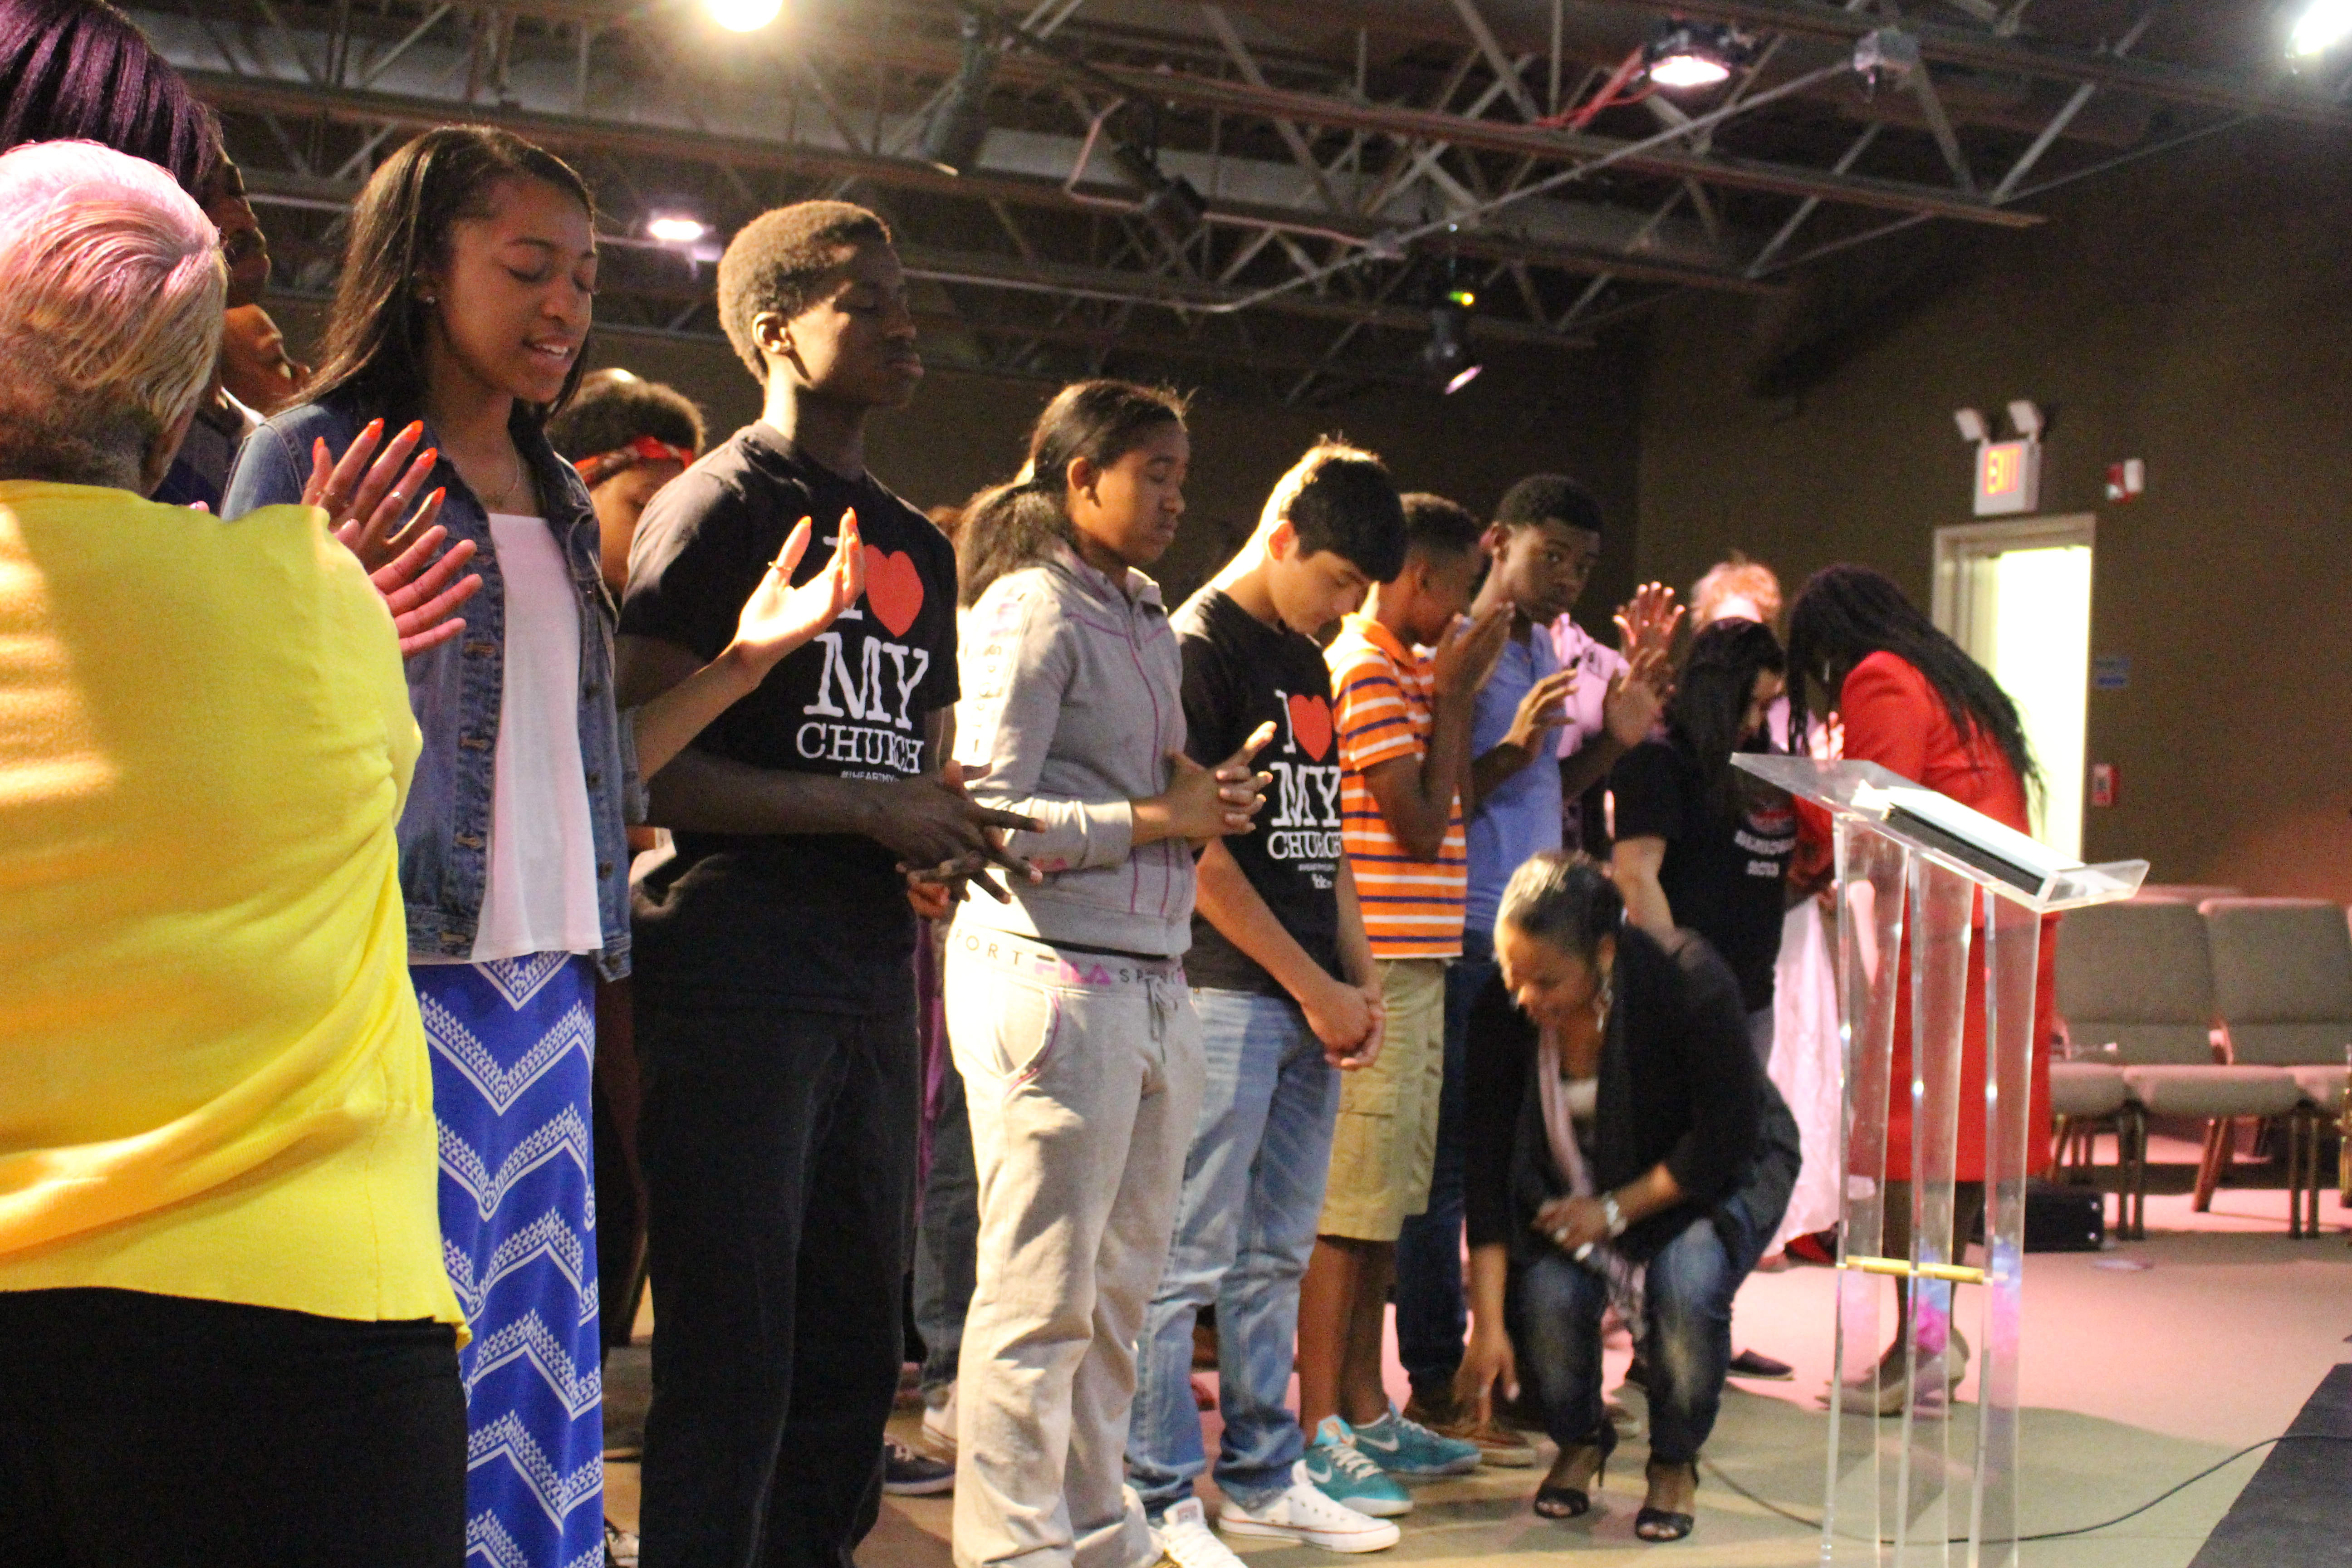 Our Blue Island campus had a powerful time praying over our youth in the English service.